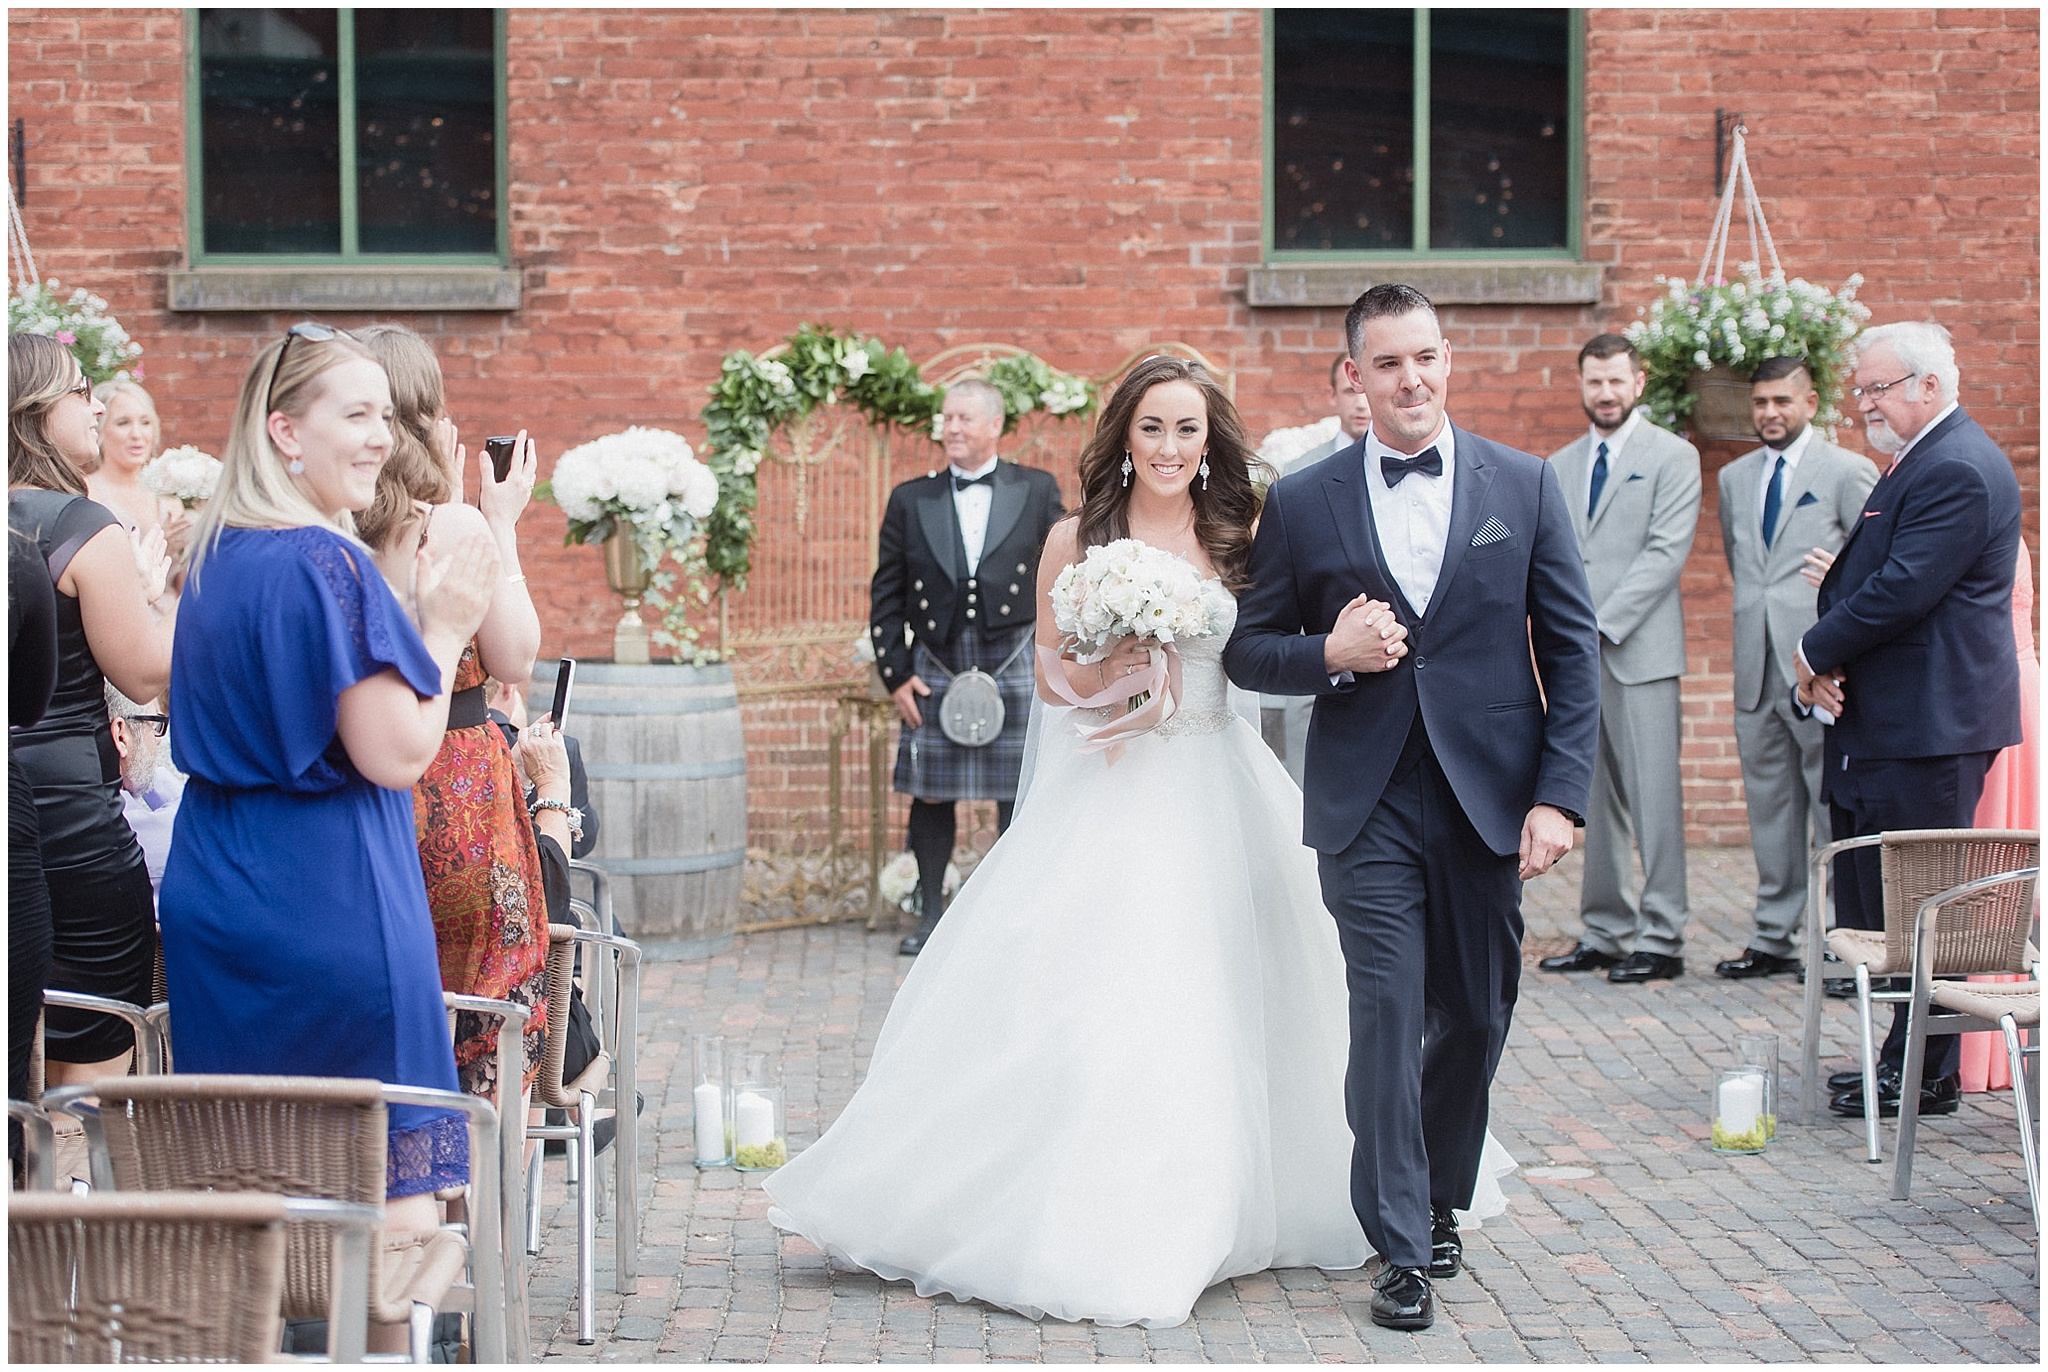 Archeo ceremony | Distillery District wedding by Jenn Kavanagh Photography